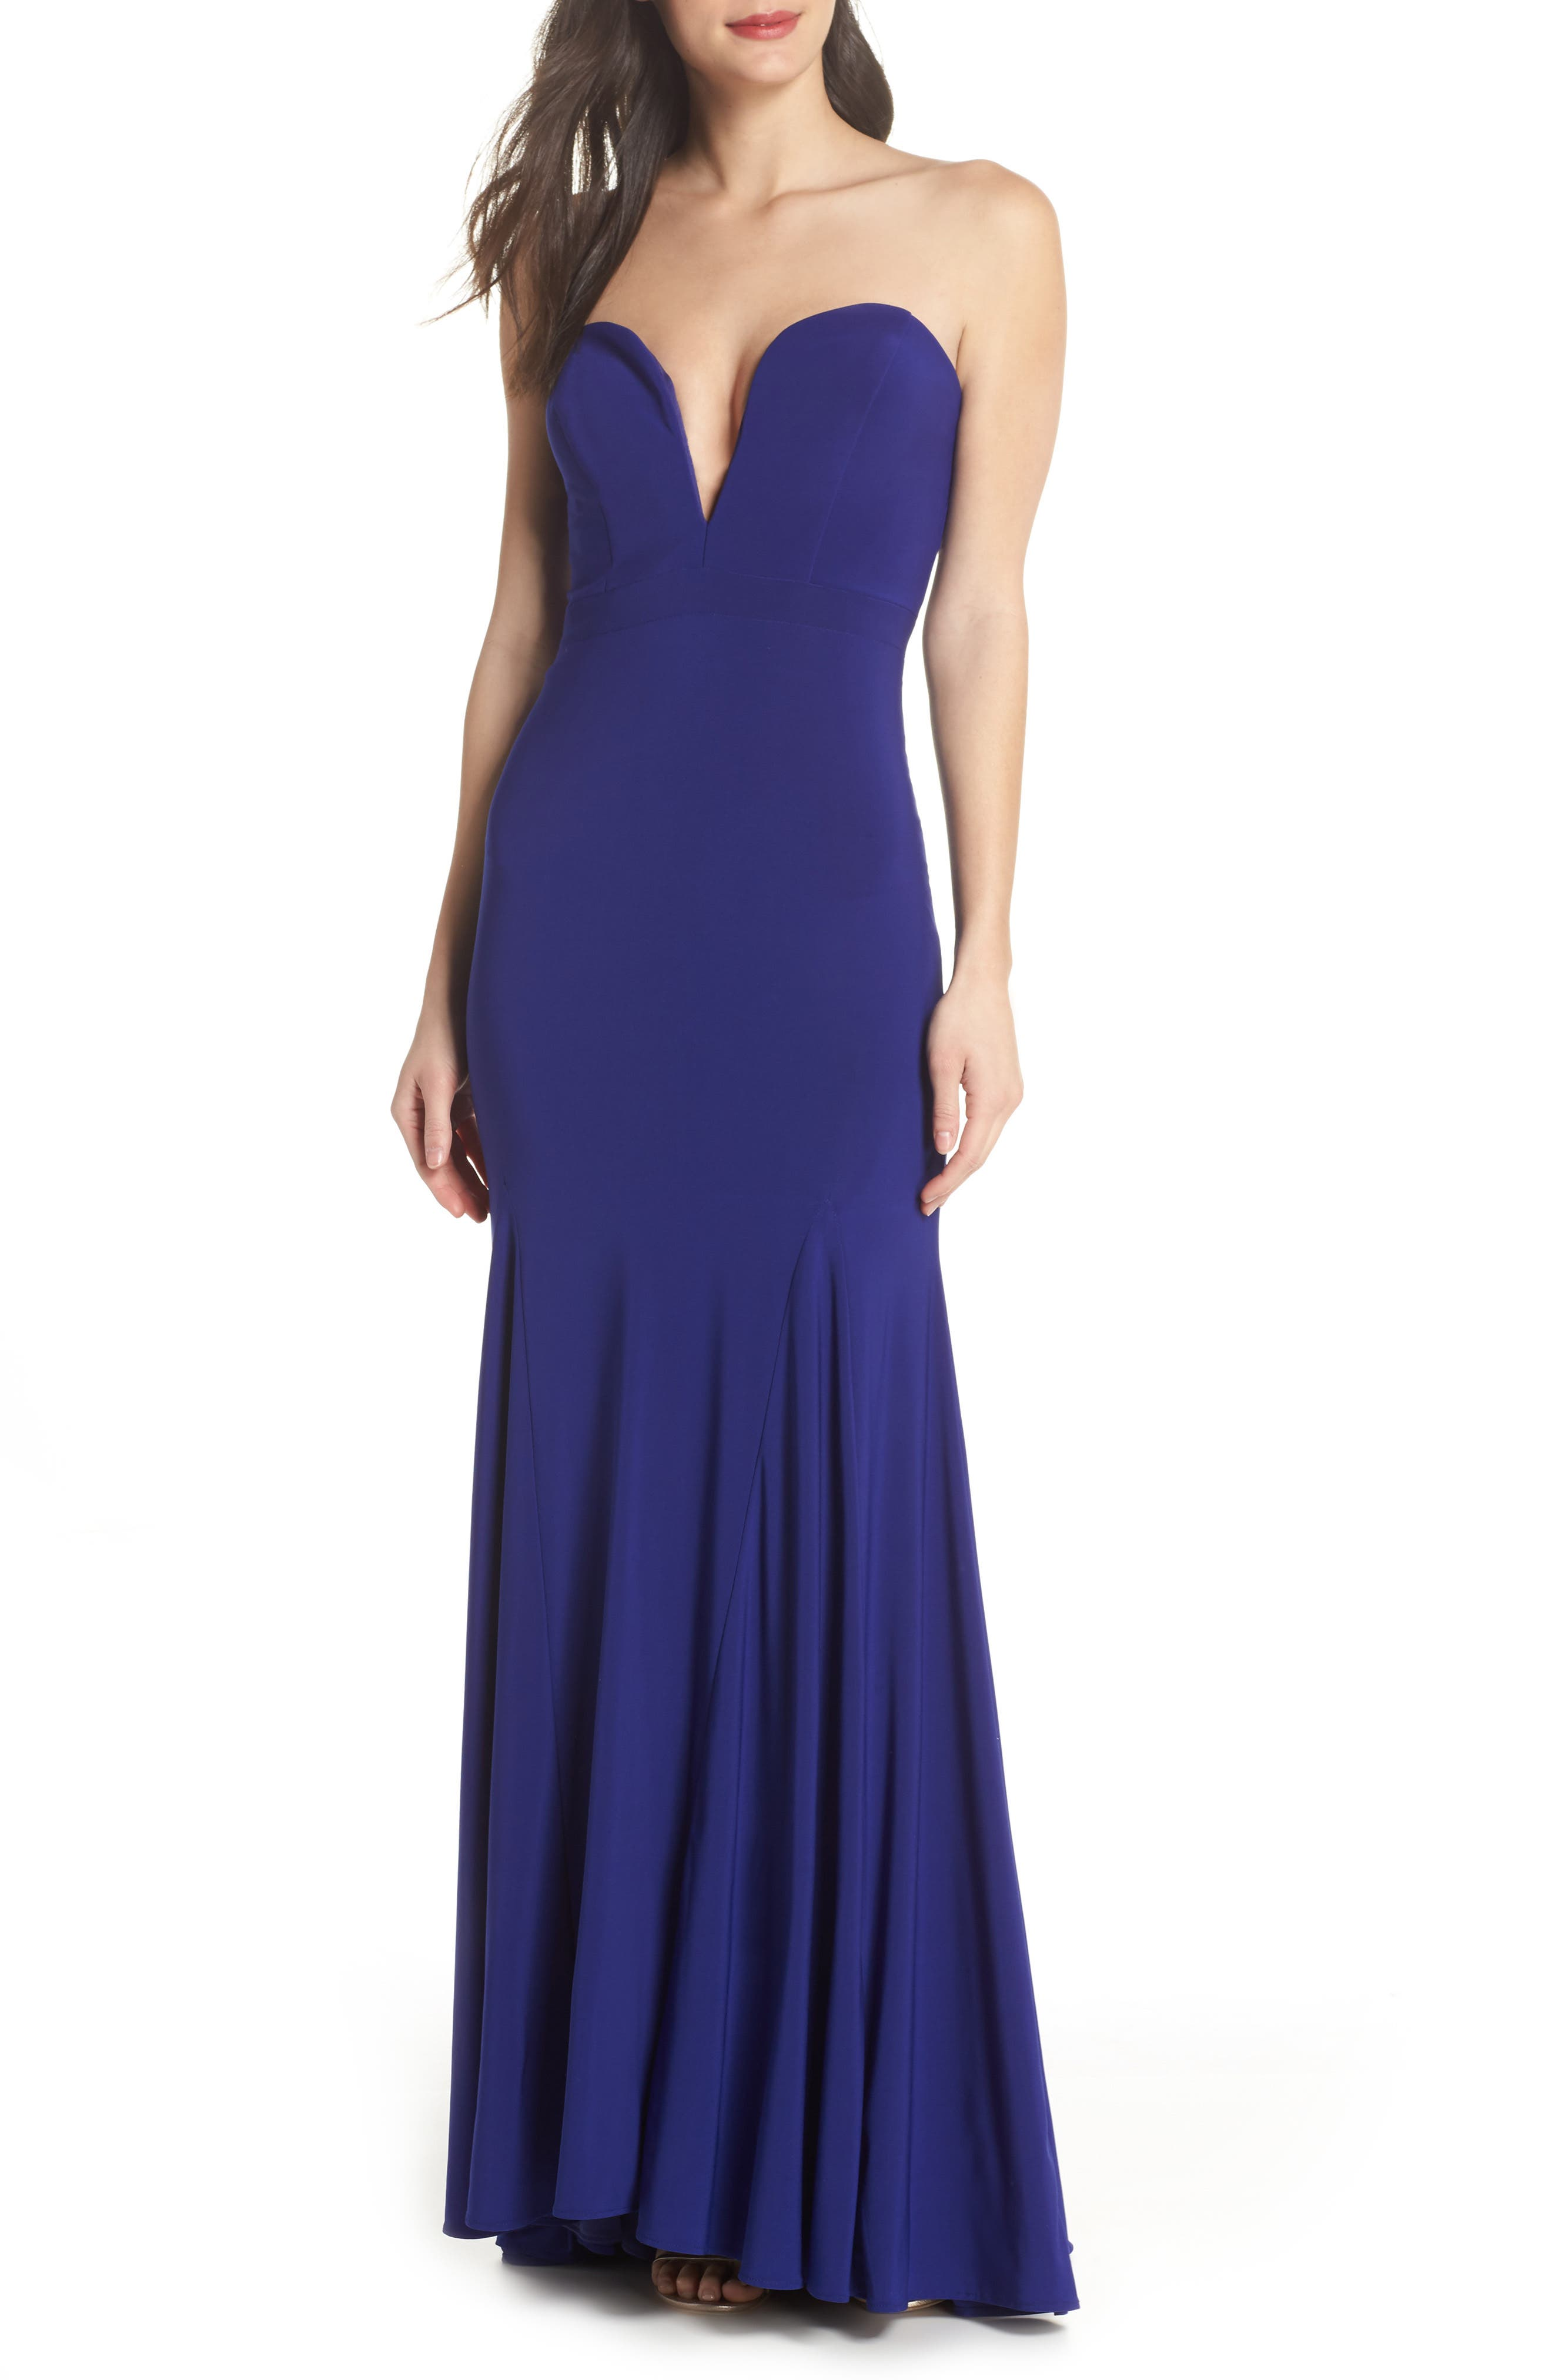 Bustier Strapless Gown,                             Main thumbnail 1, color,